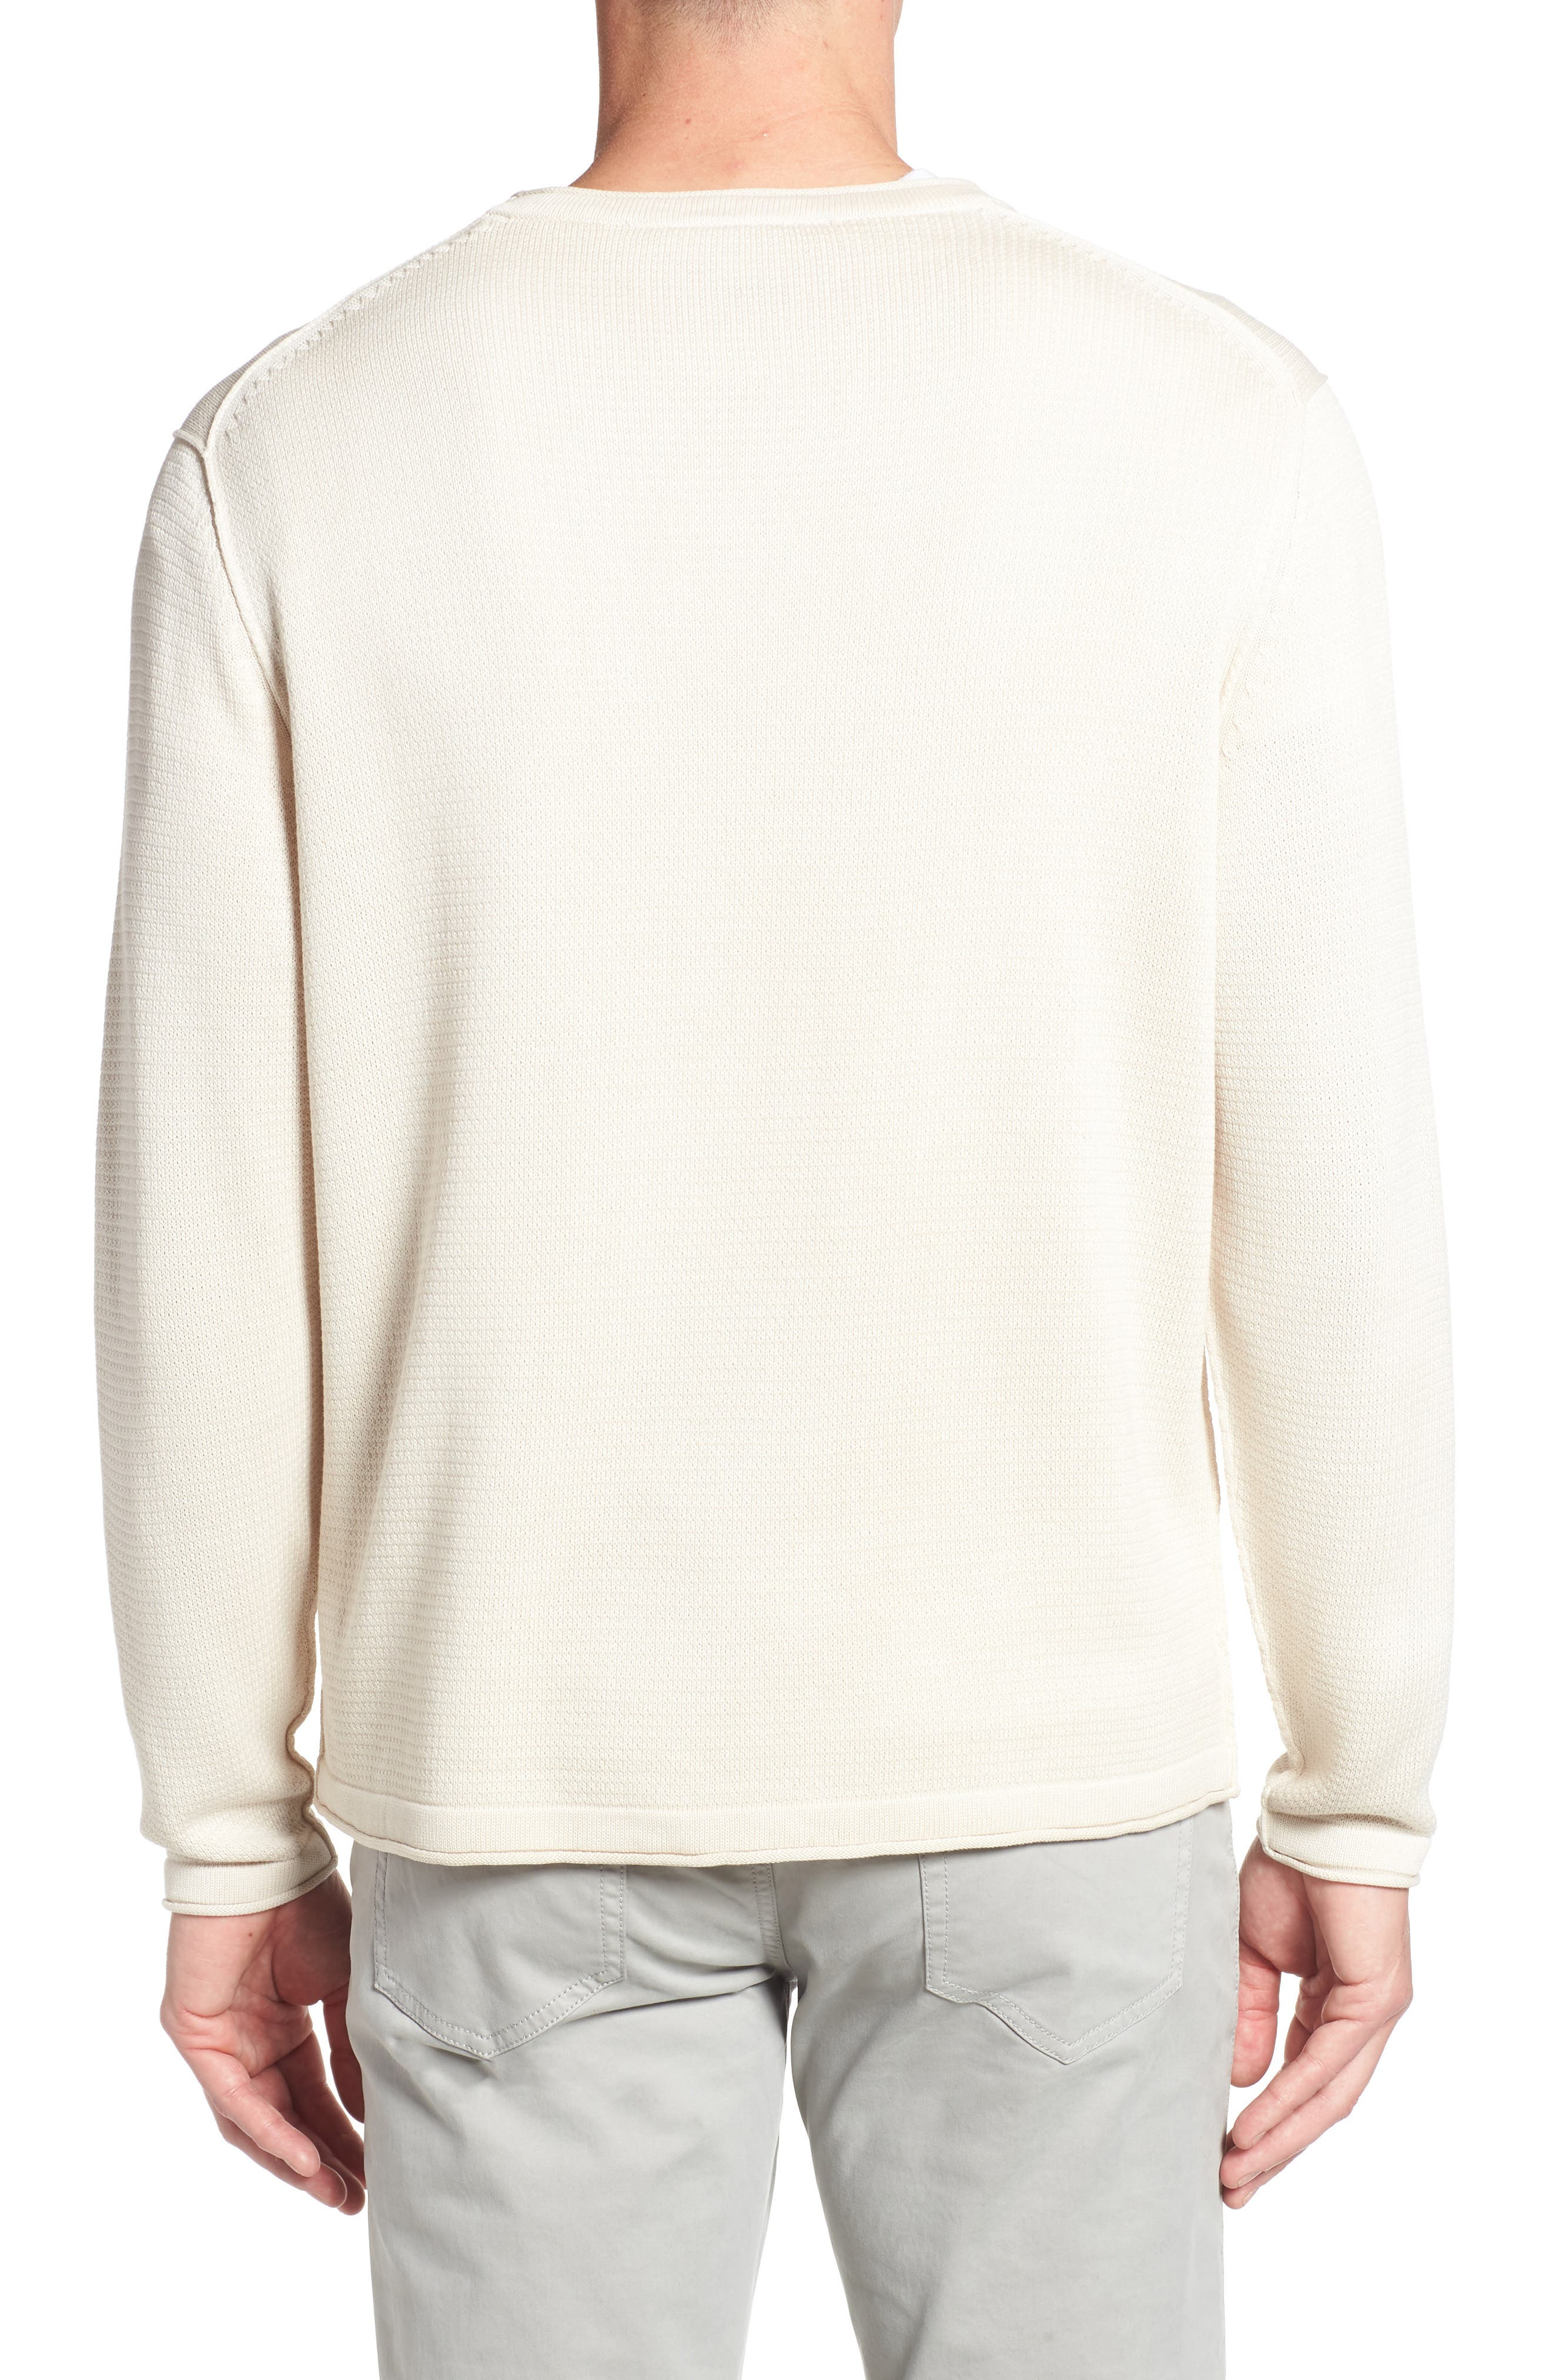 TOMMY BAHAMA,                             South Shore Flip Sweater,                             Alternate thumbnail 3, color,                             200